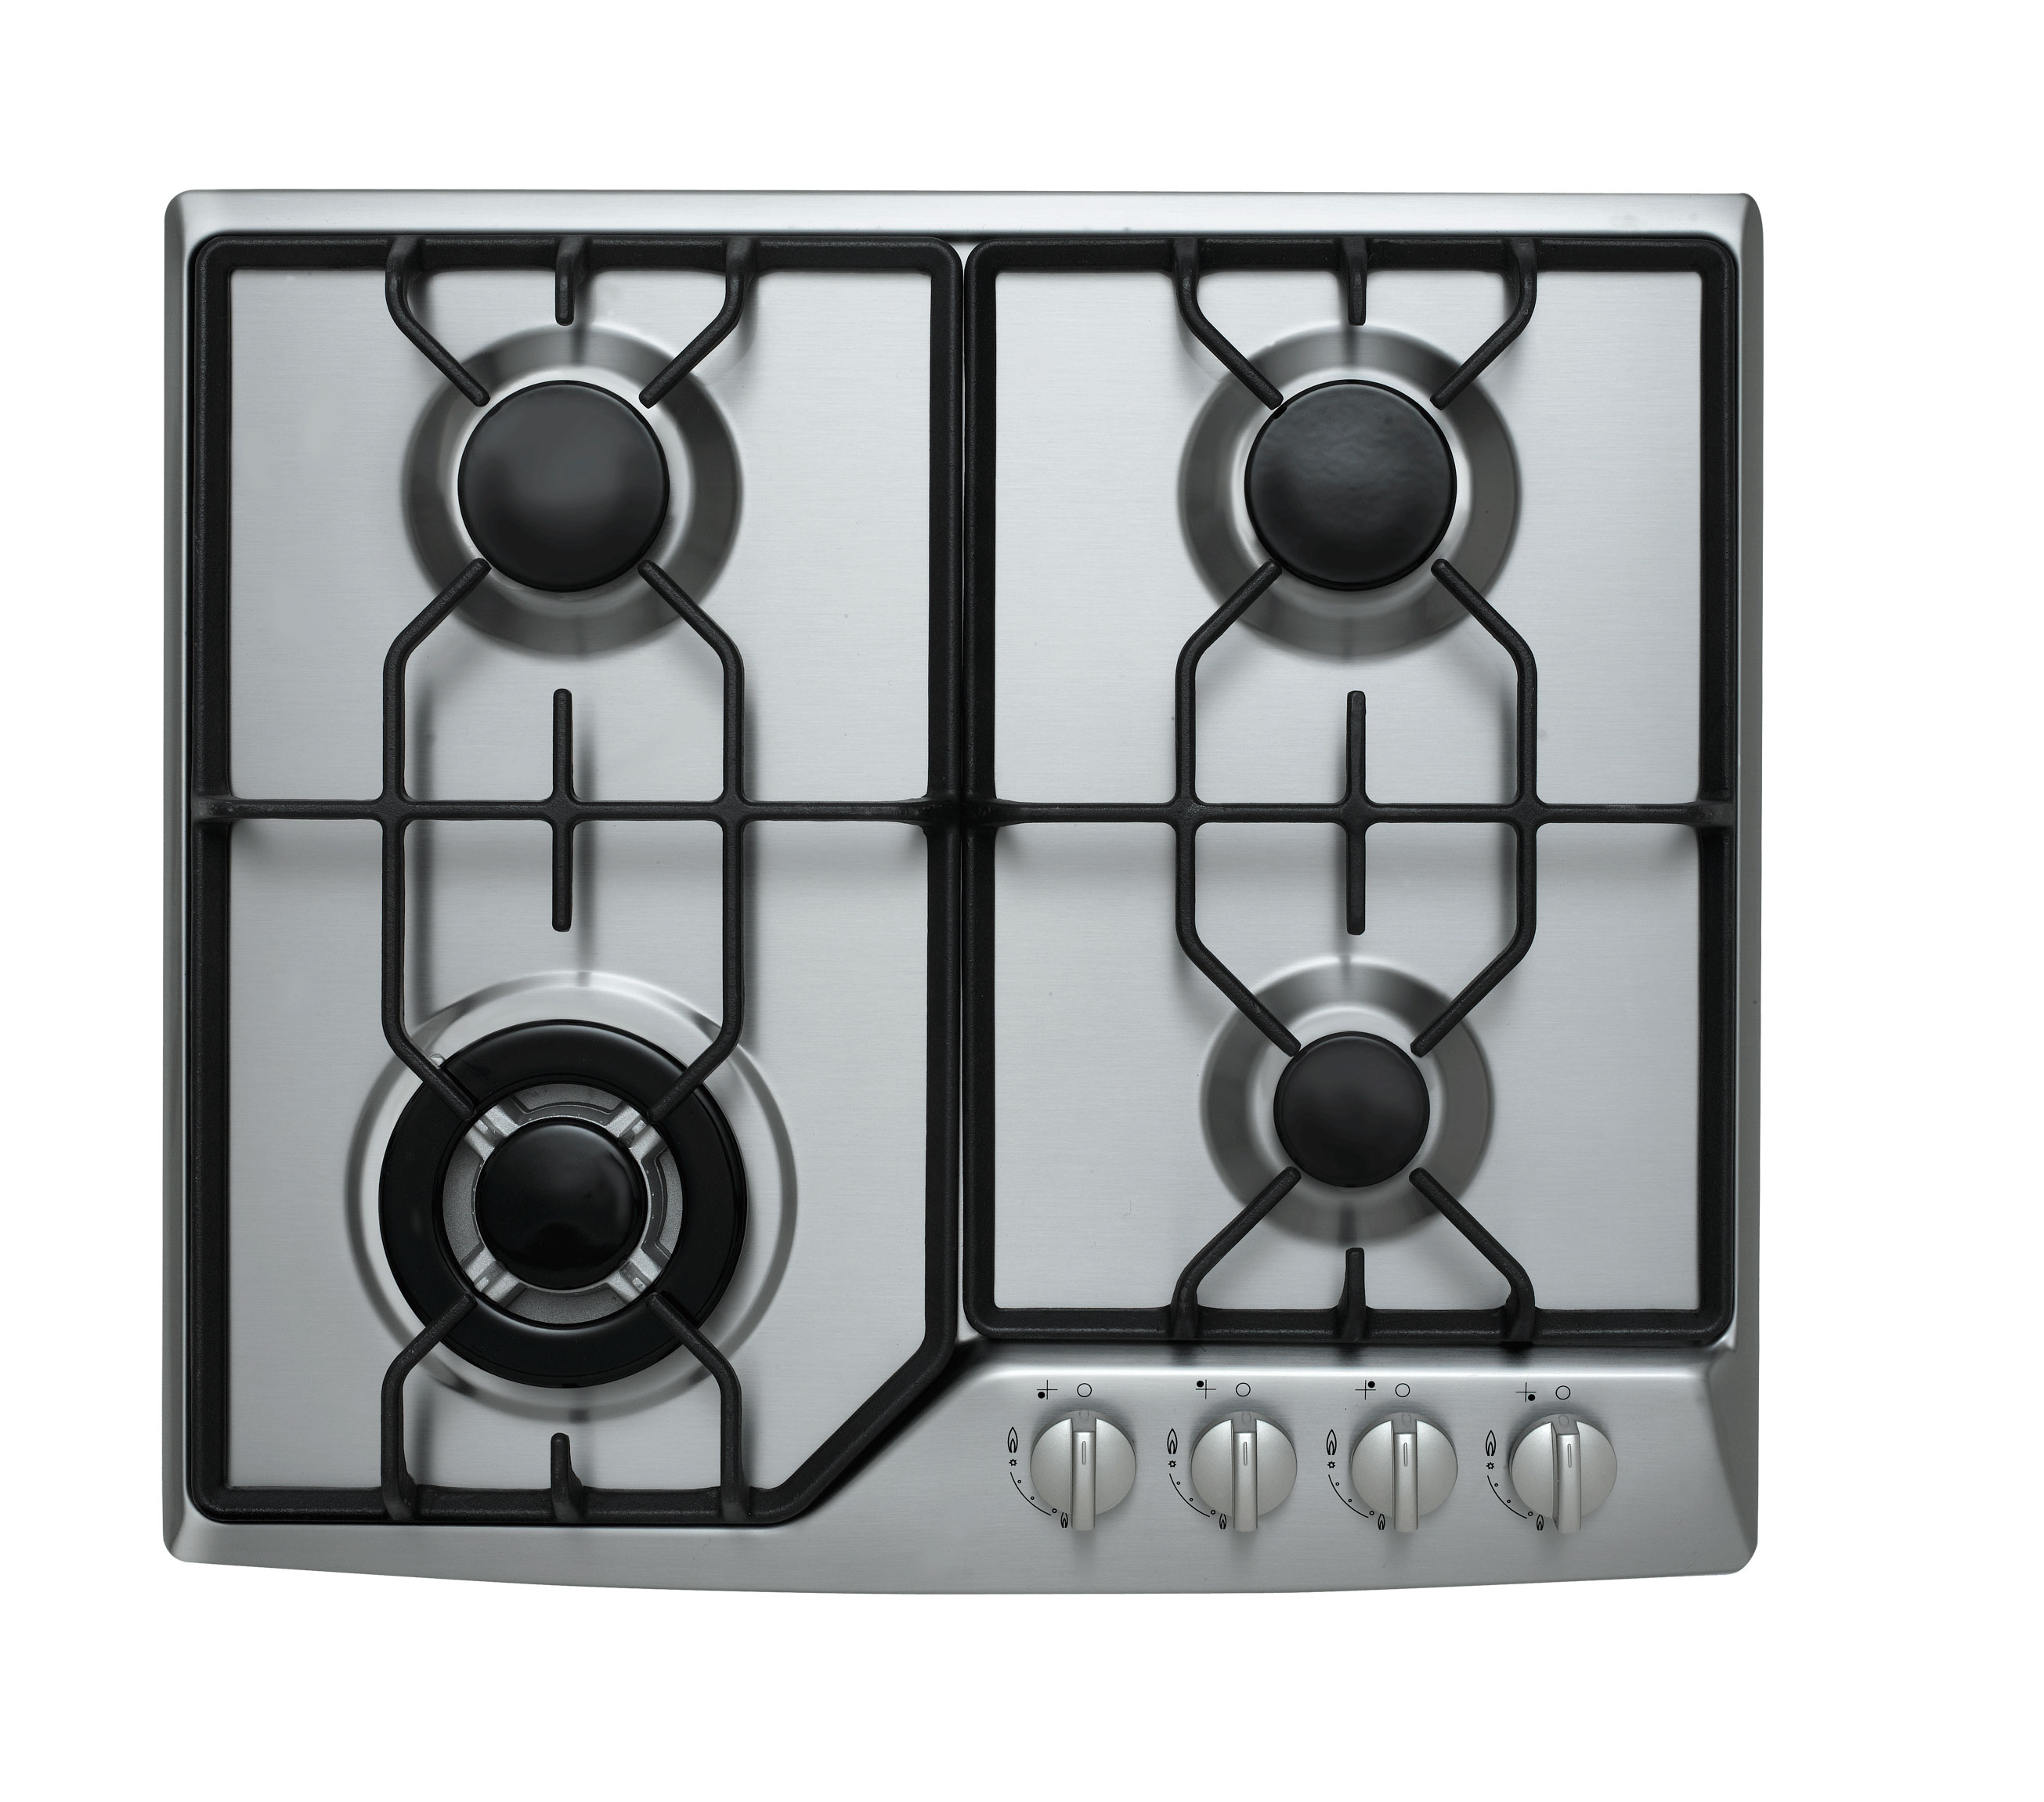 Gas Cooktop 600mm